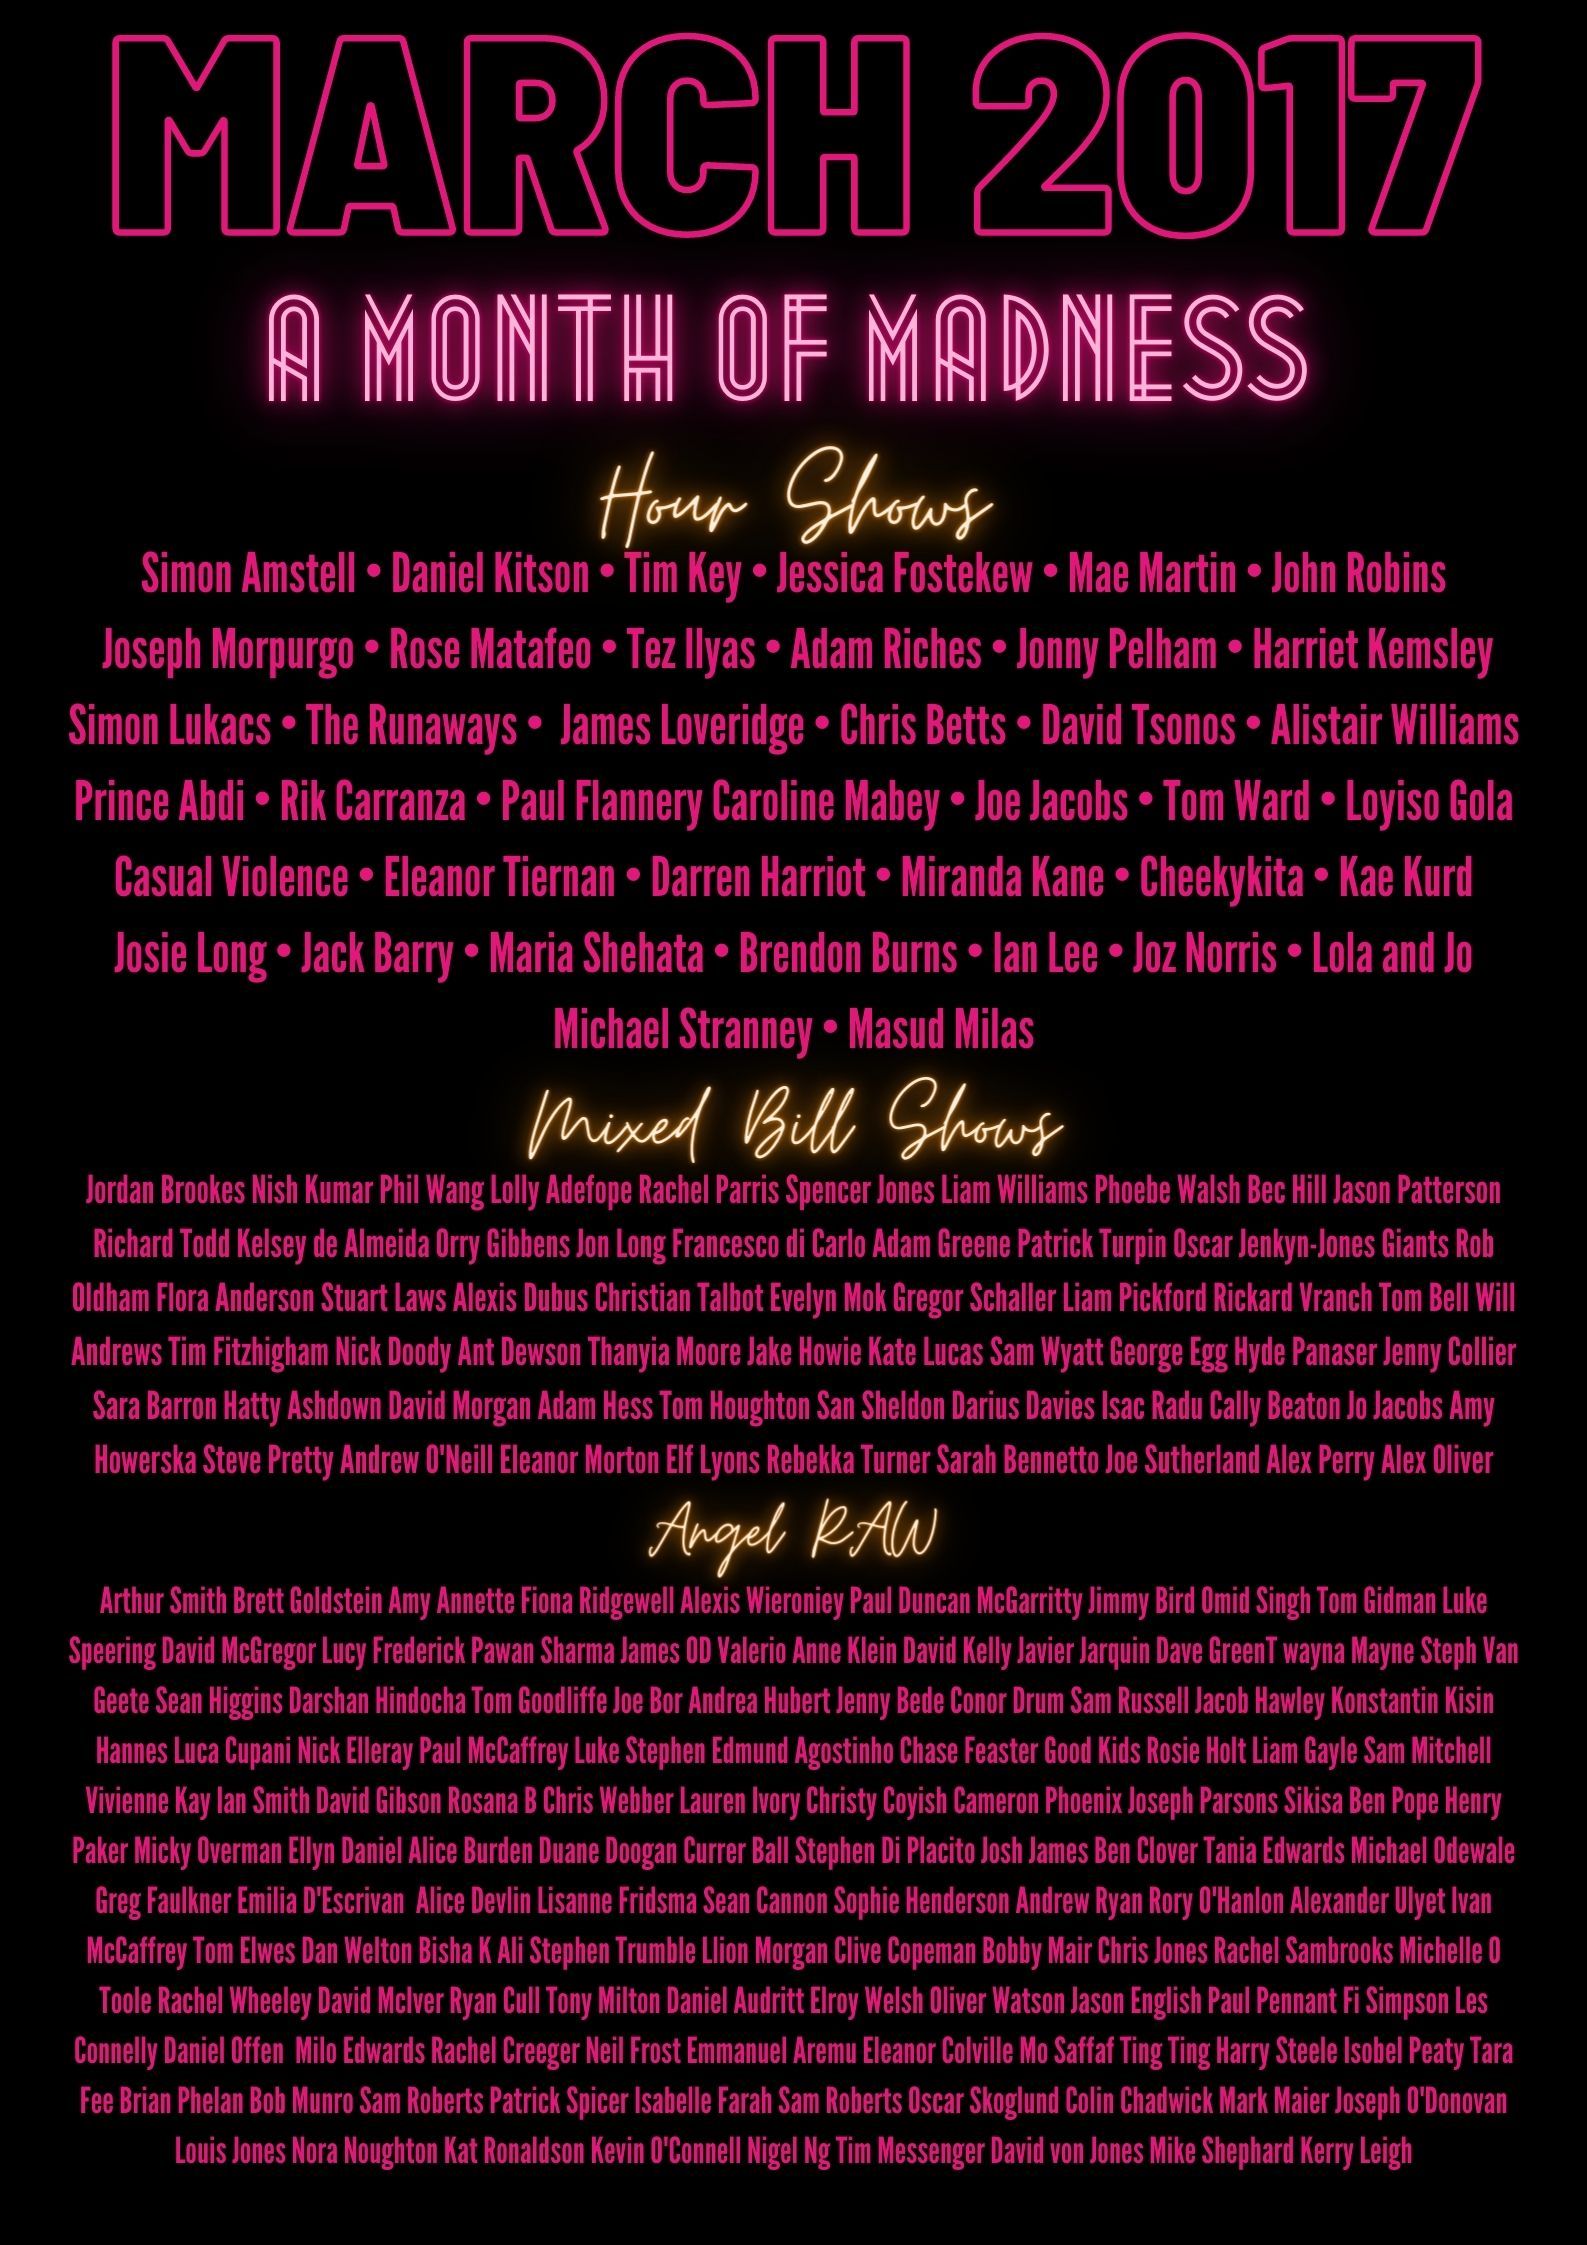 Holy shit bruh have you seen these lineups?